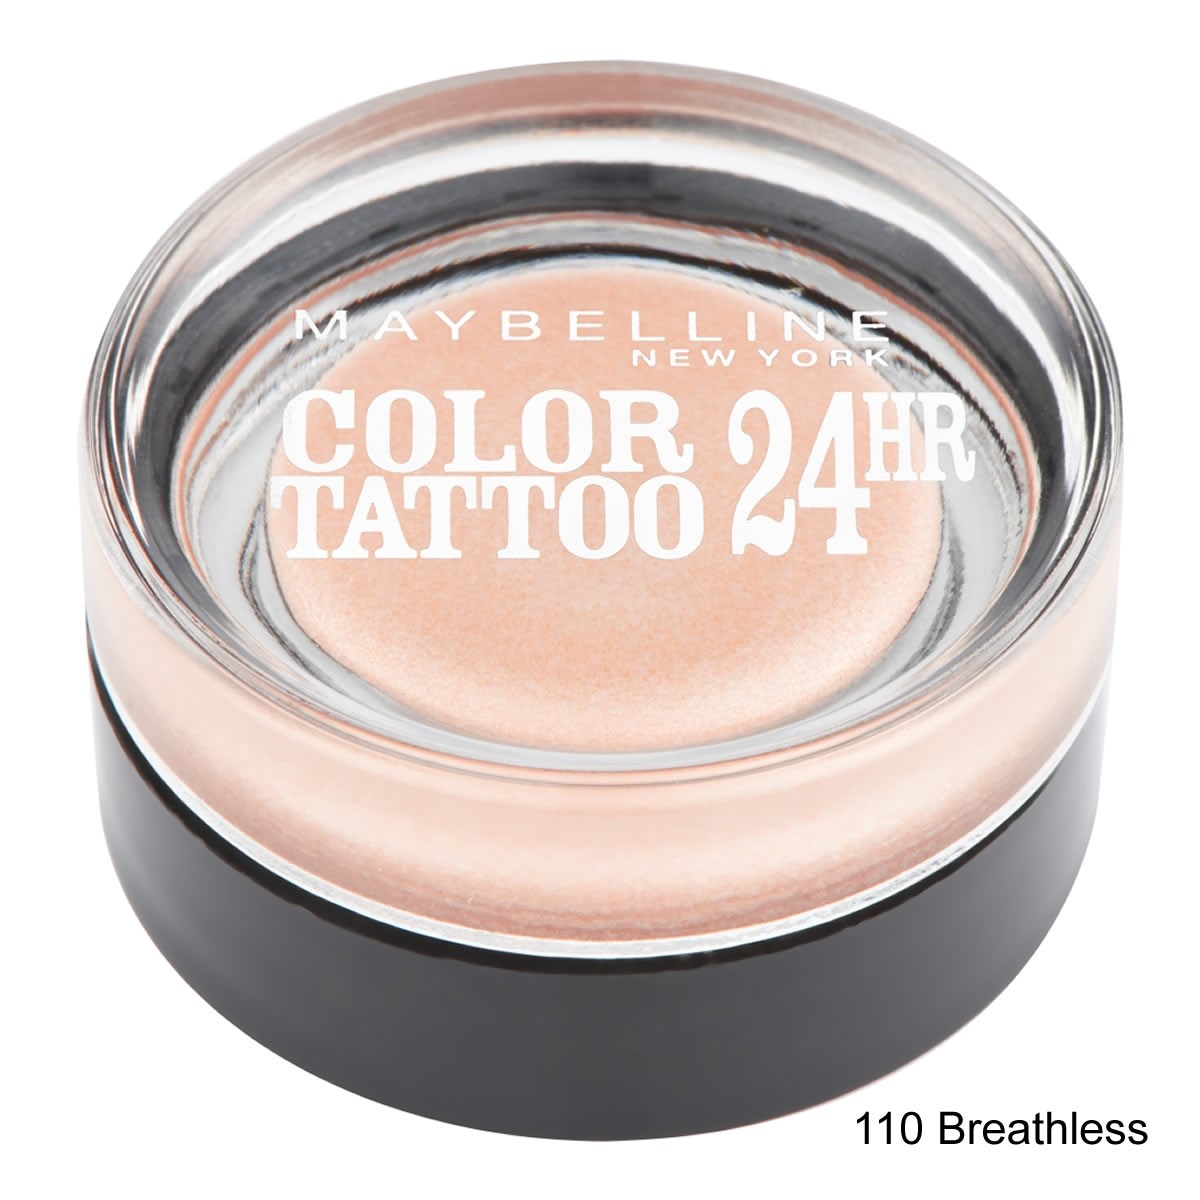 Maybelline Color Tattoo 24Hr Gel-Cream Eyeshadow